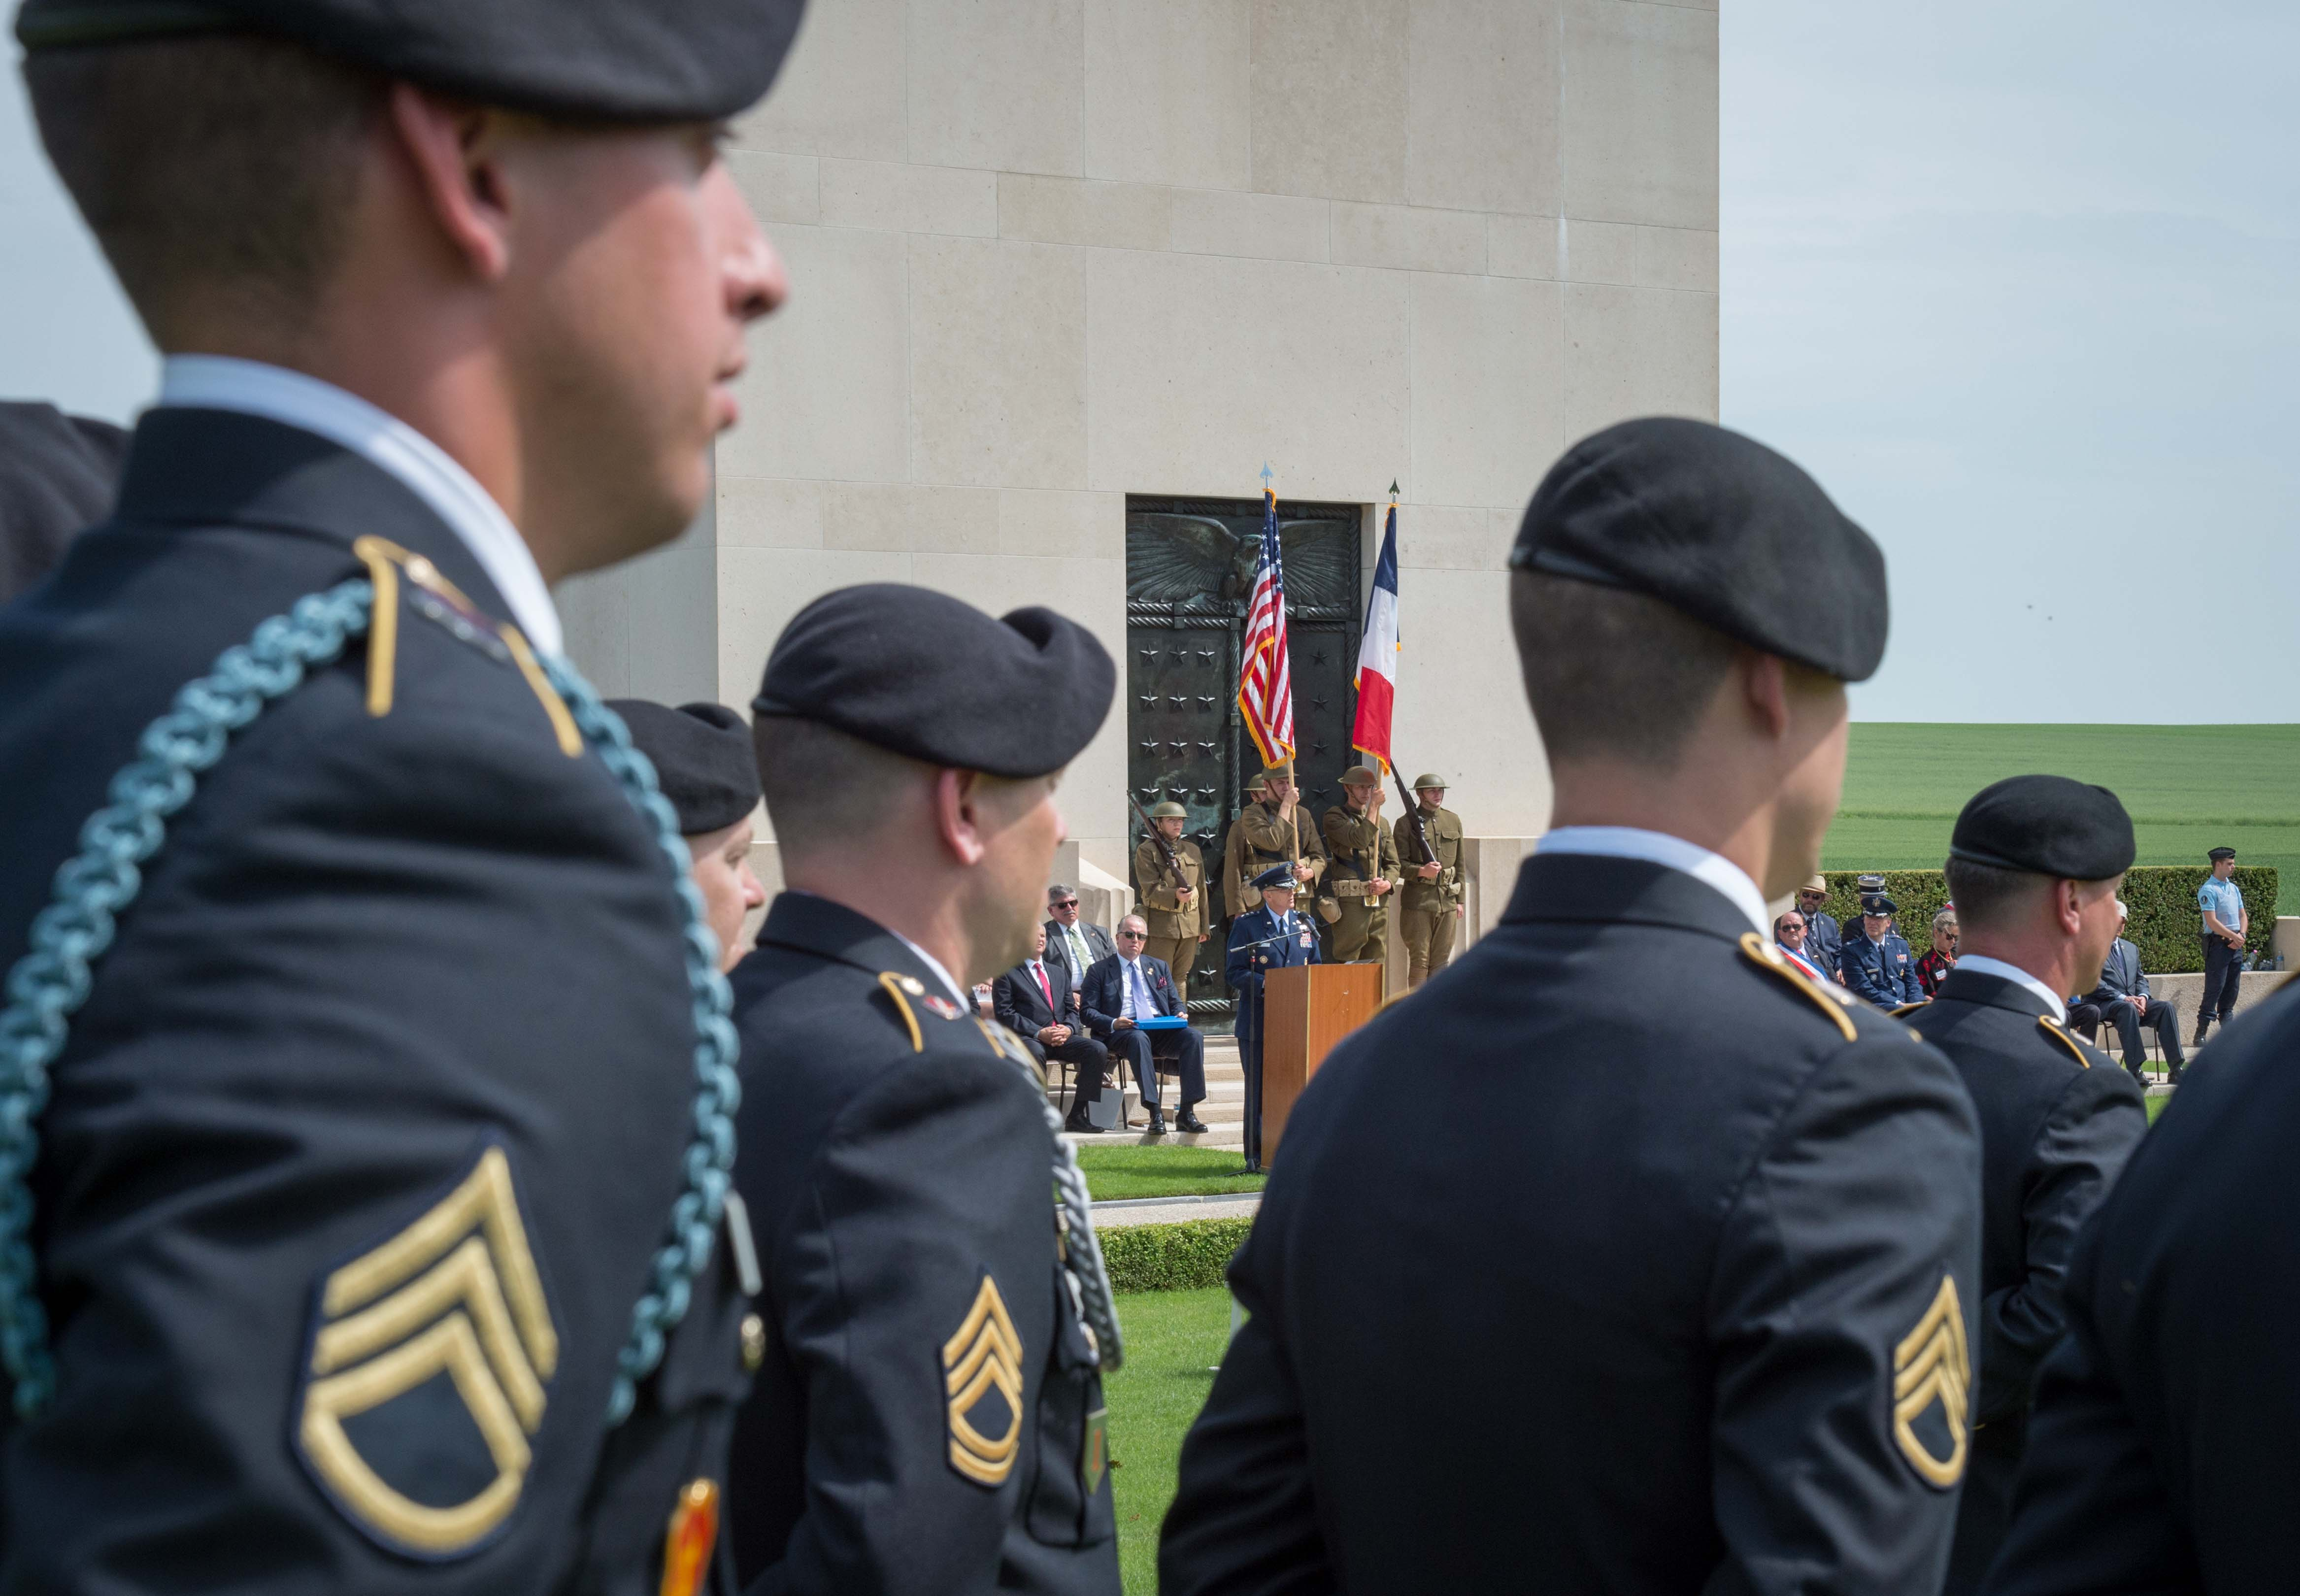 Soldiers look on during the ceremony.